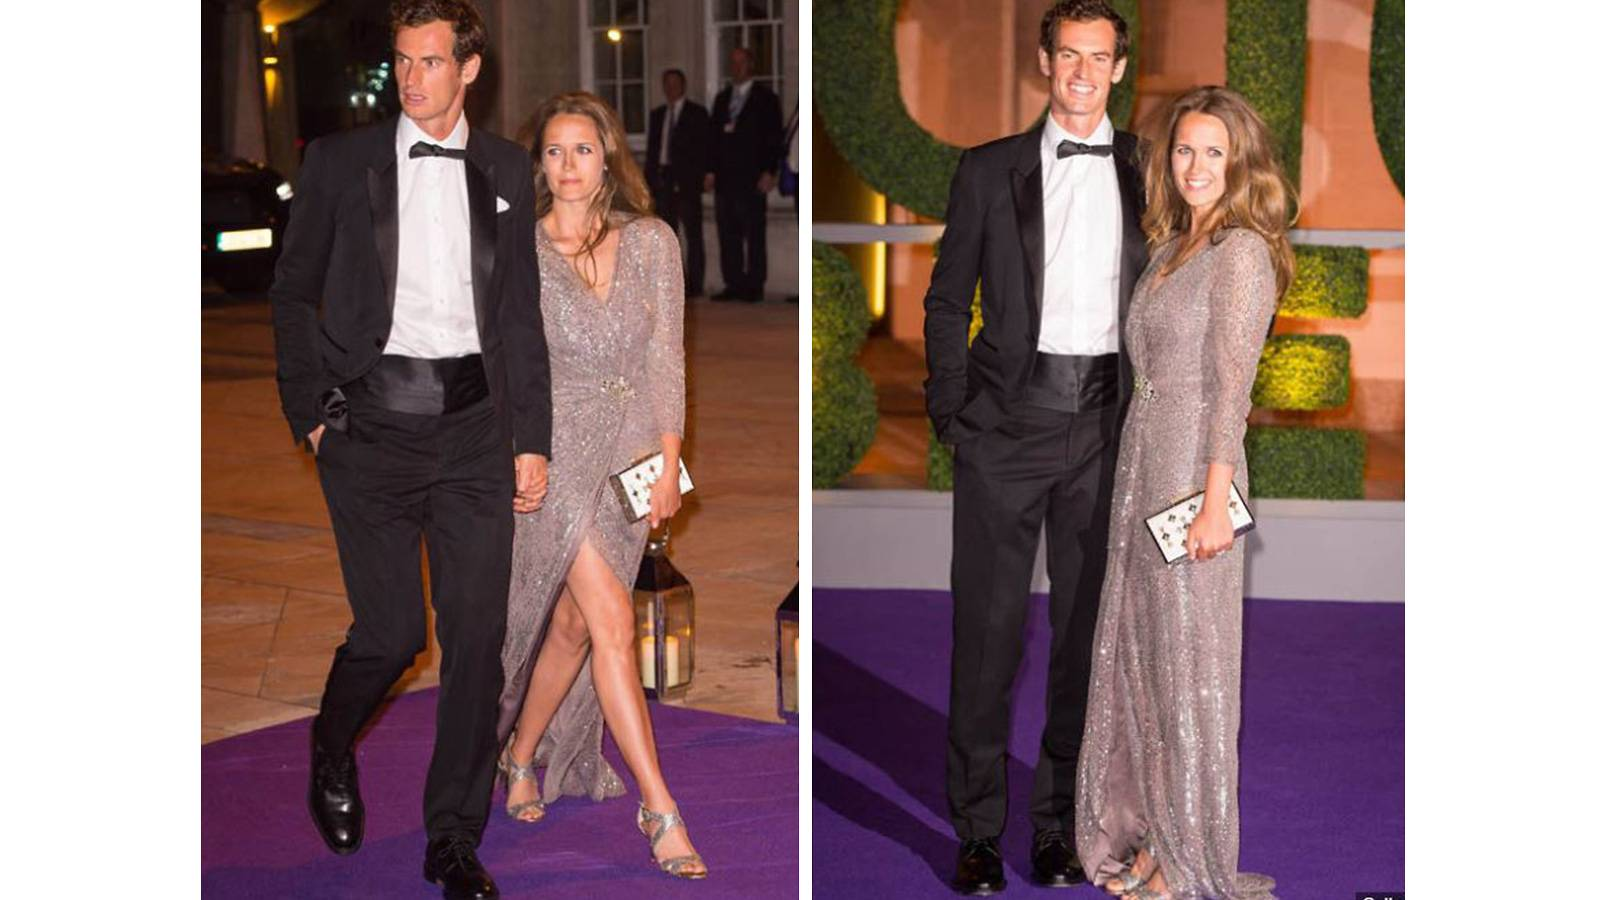 Andy Murray and Kim Sears, both 30